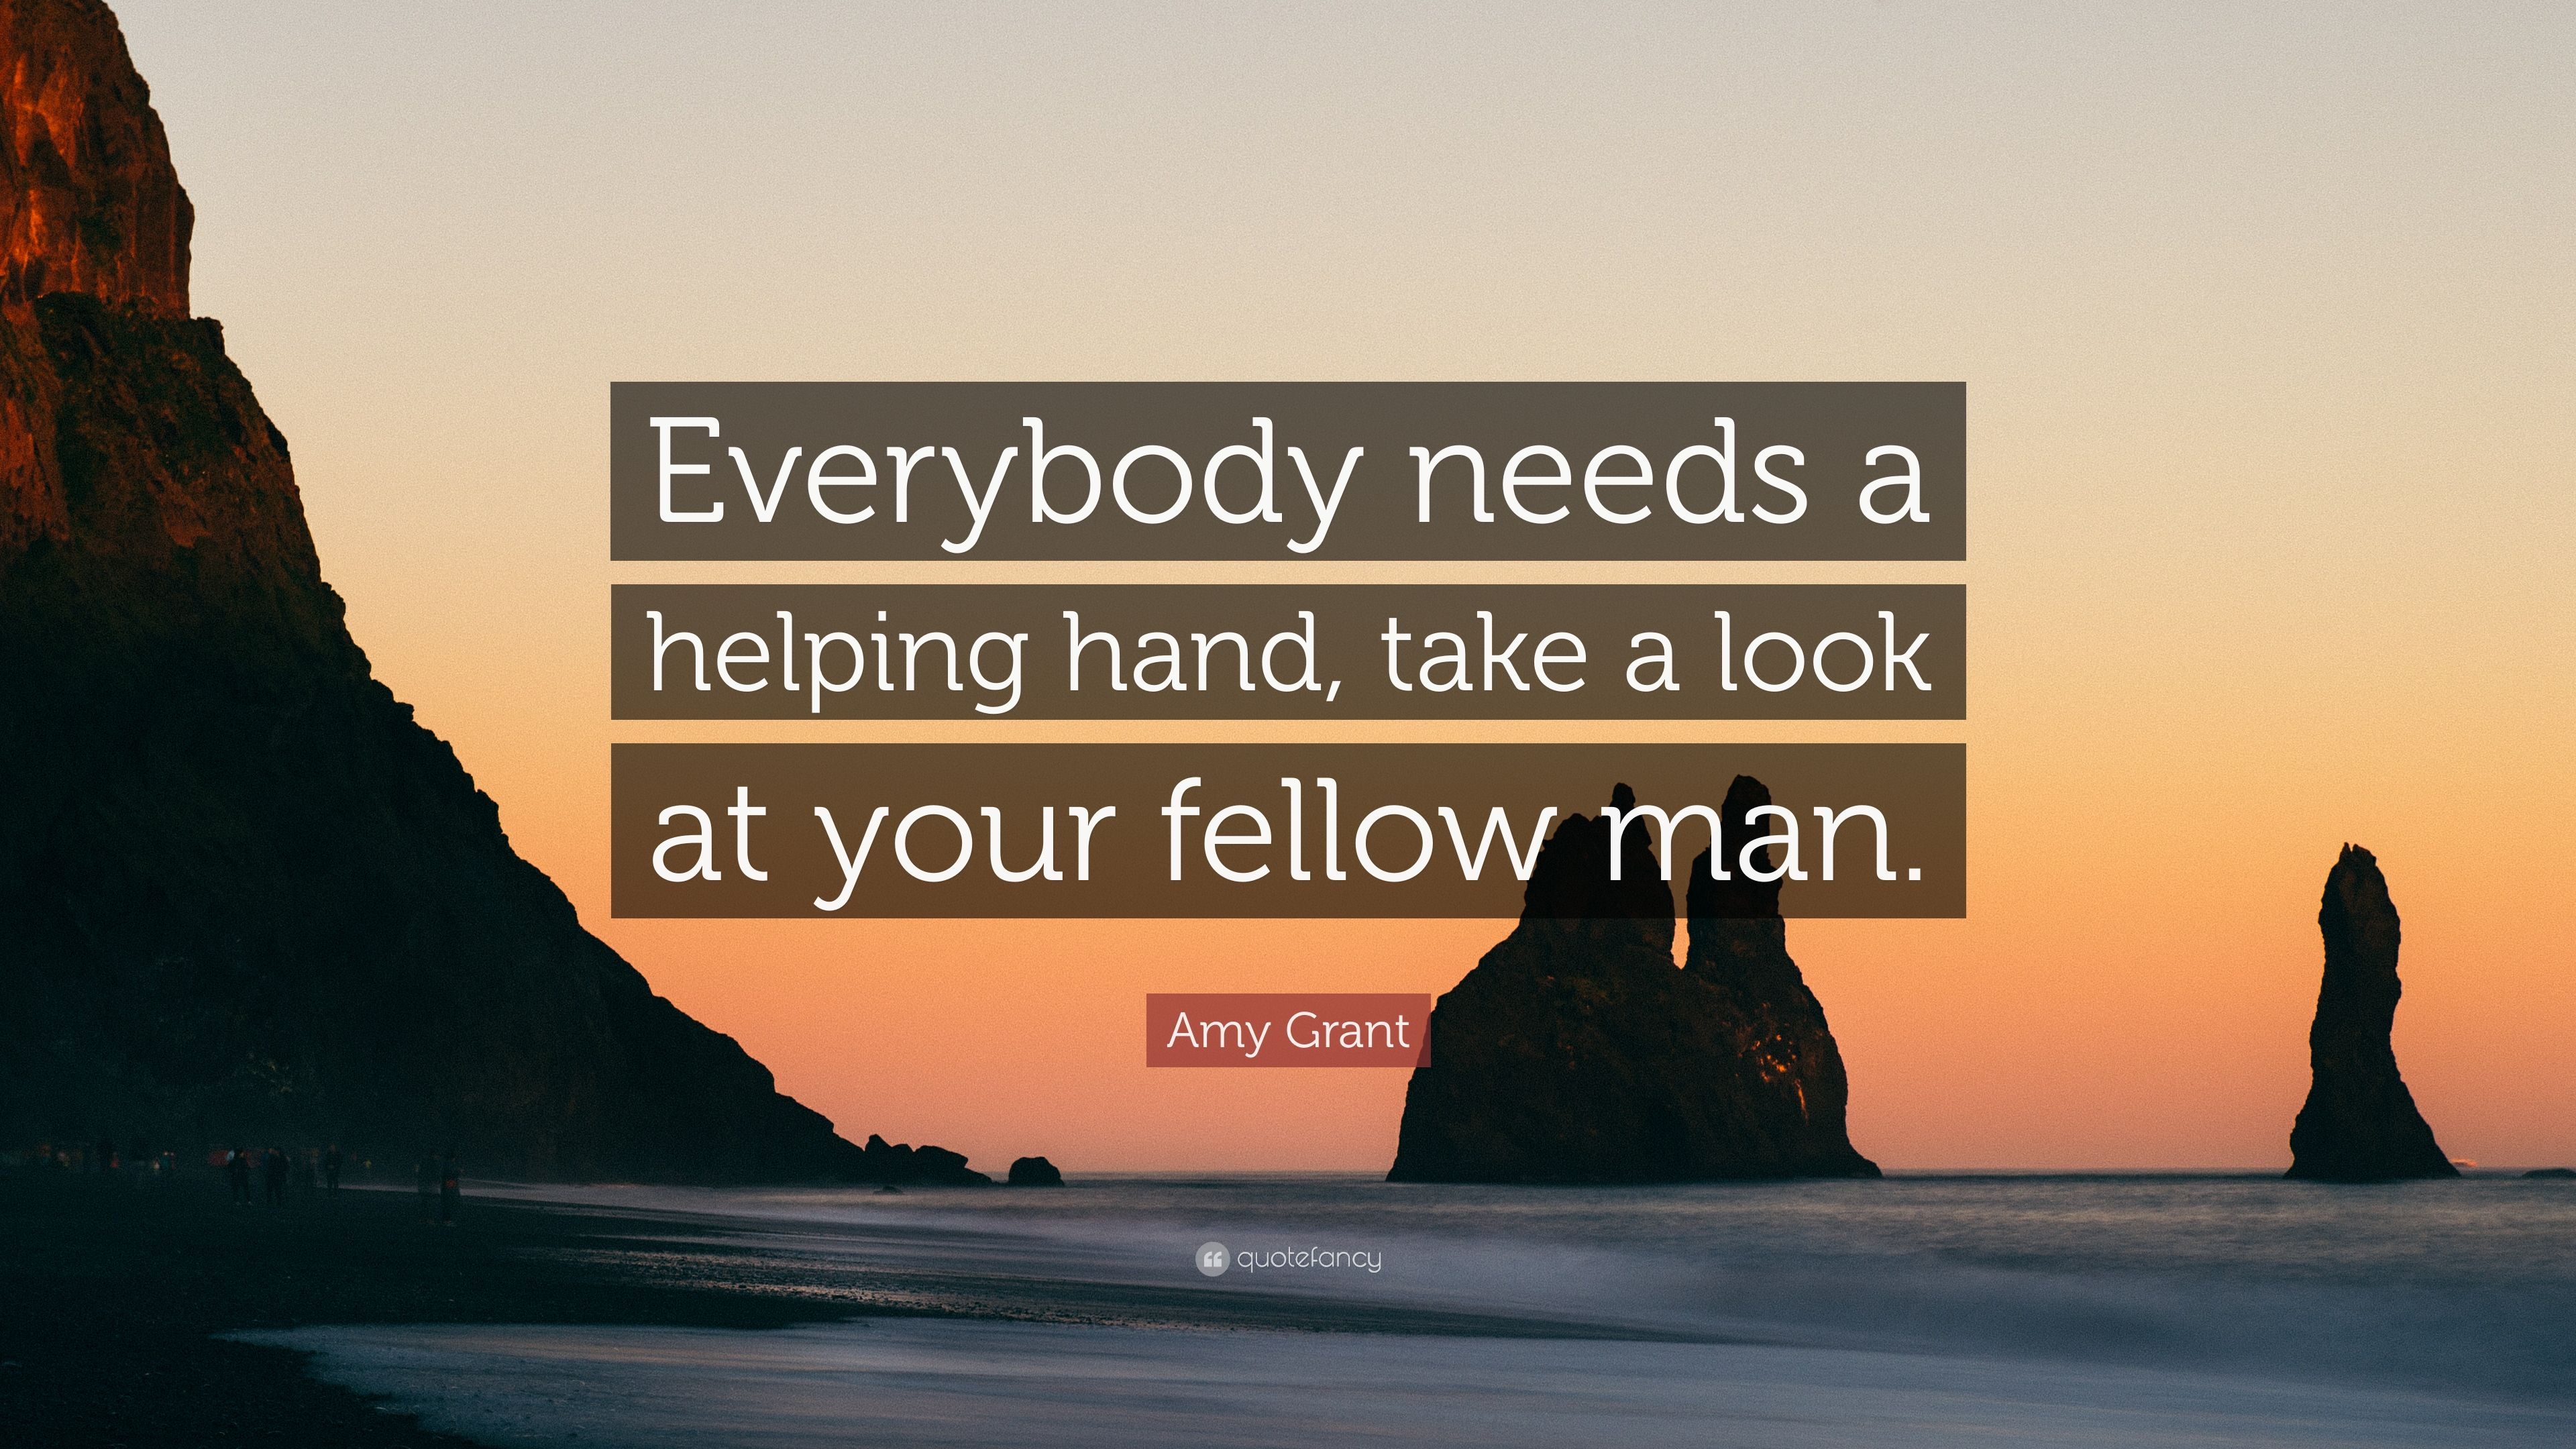 Everybody needs a helping hand